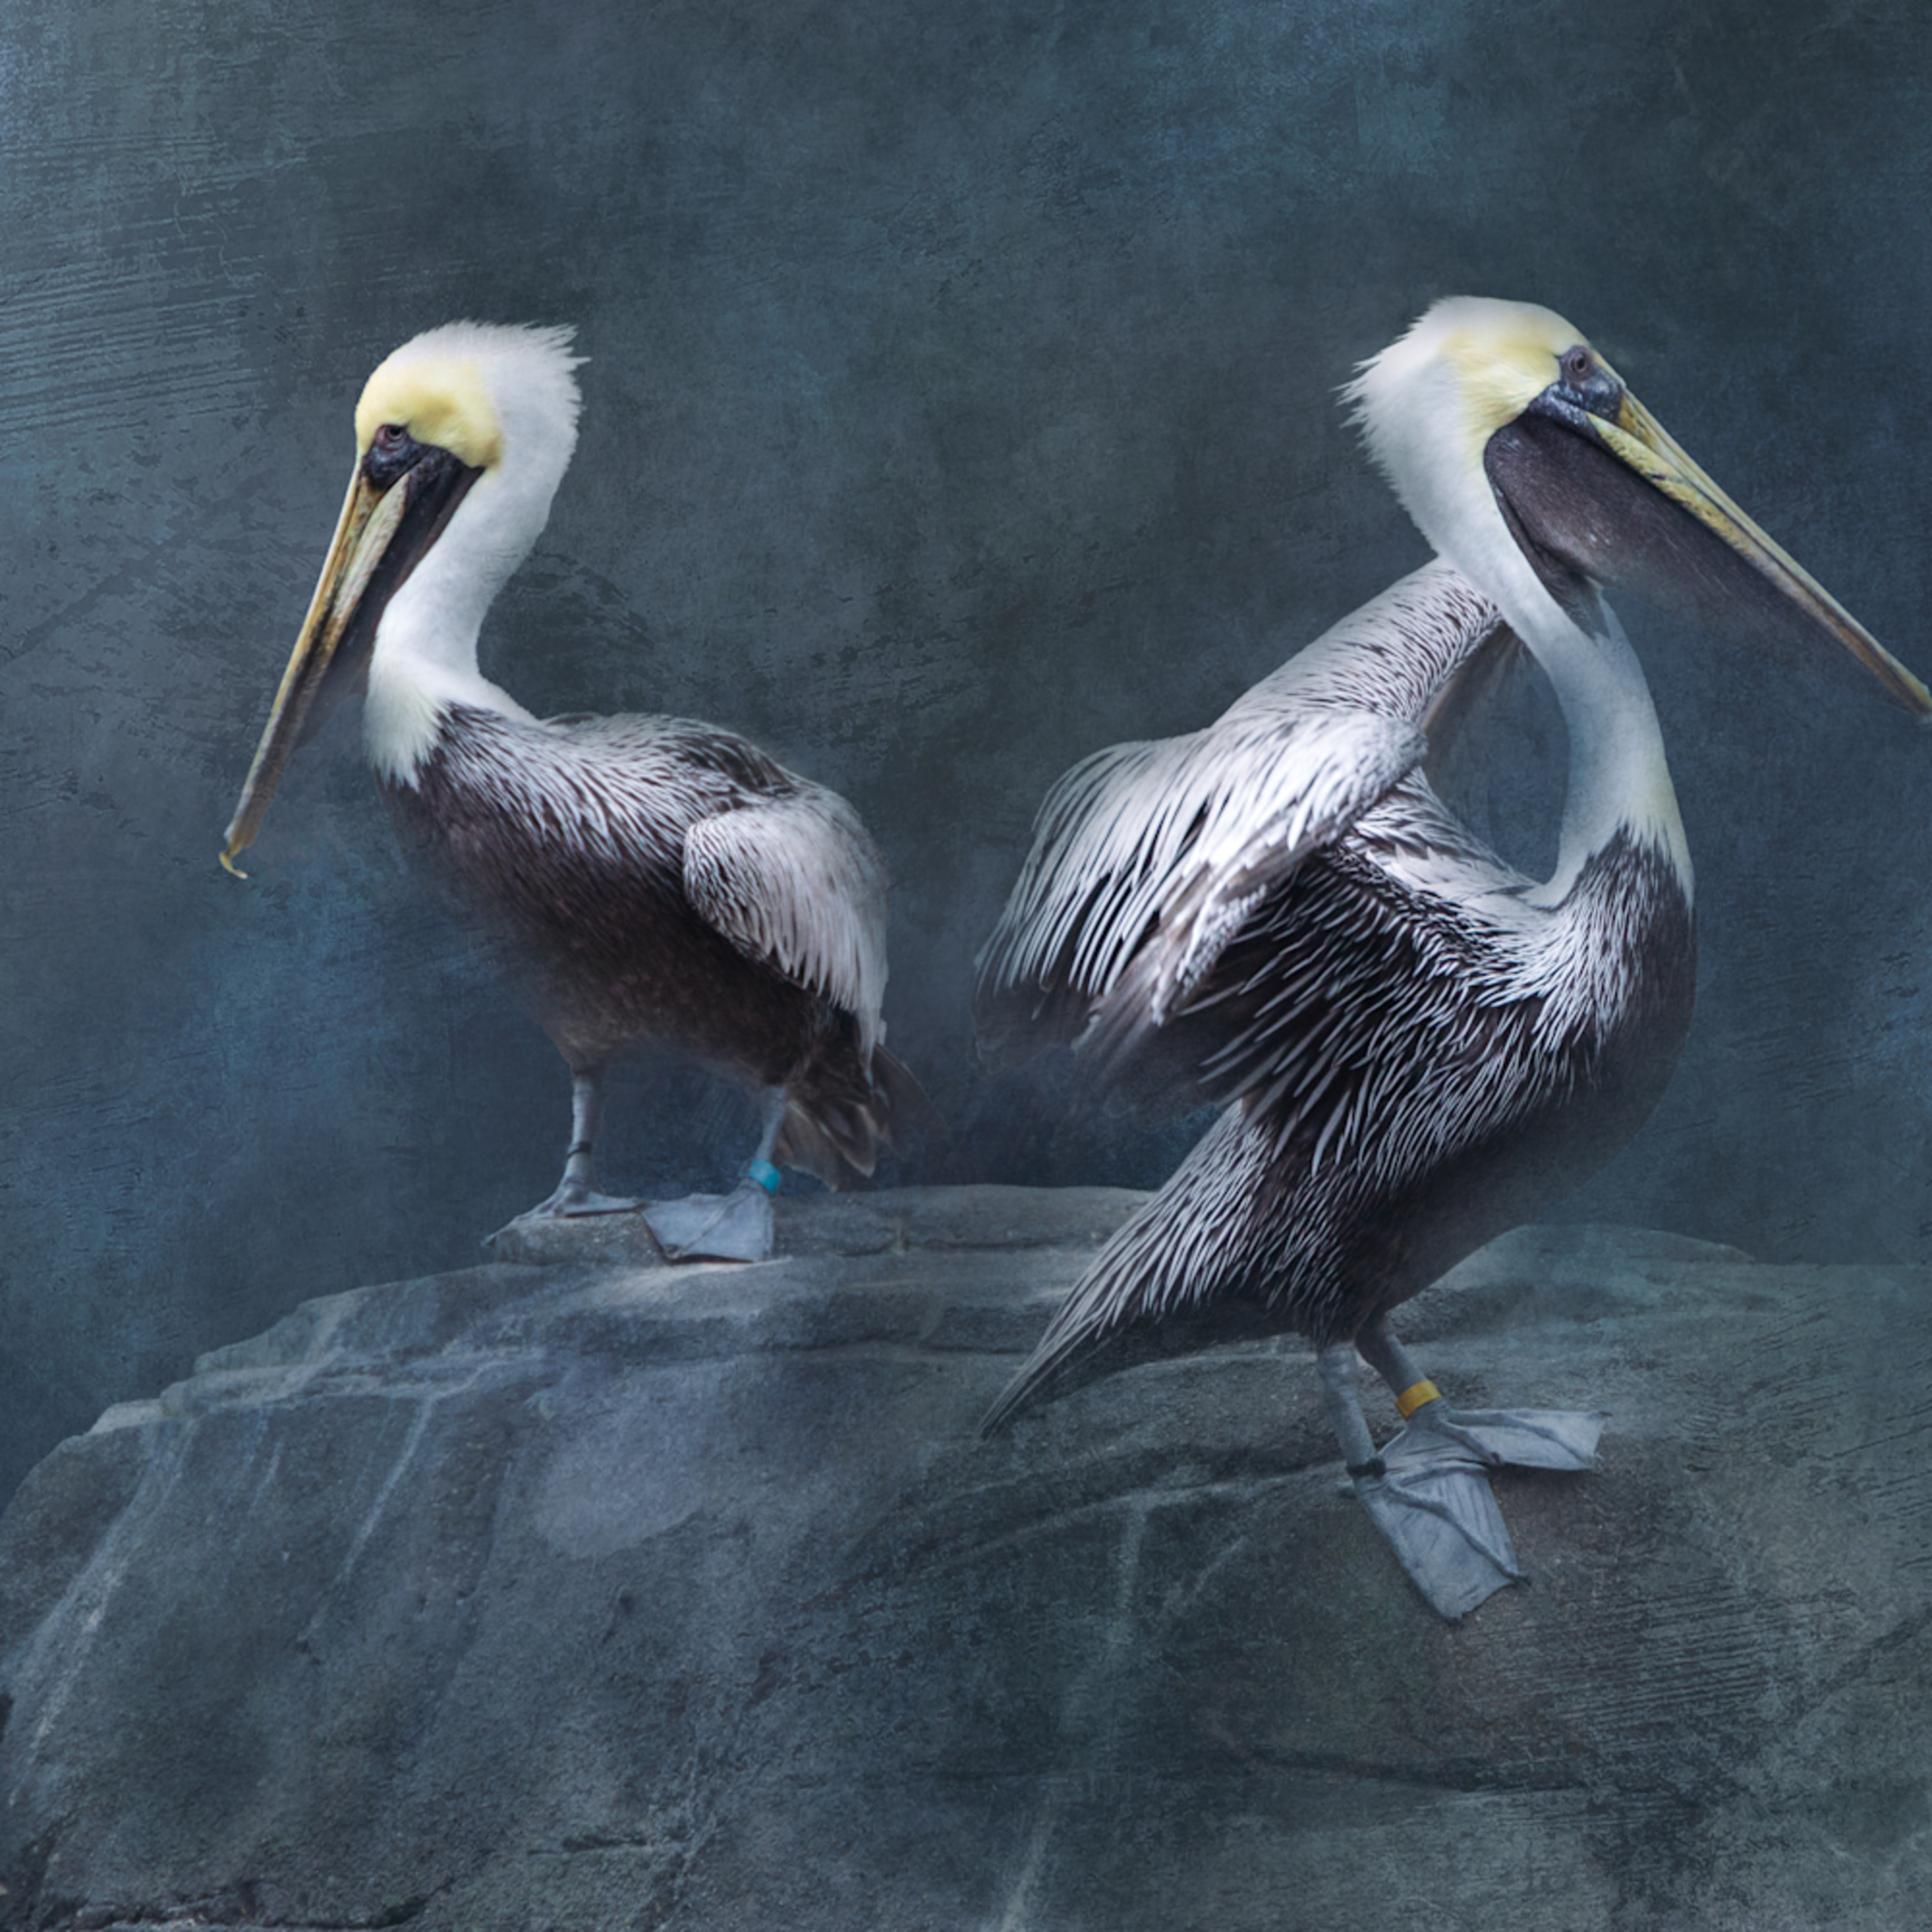 Brown pelicans on textured background npl6jh